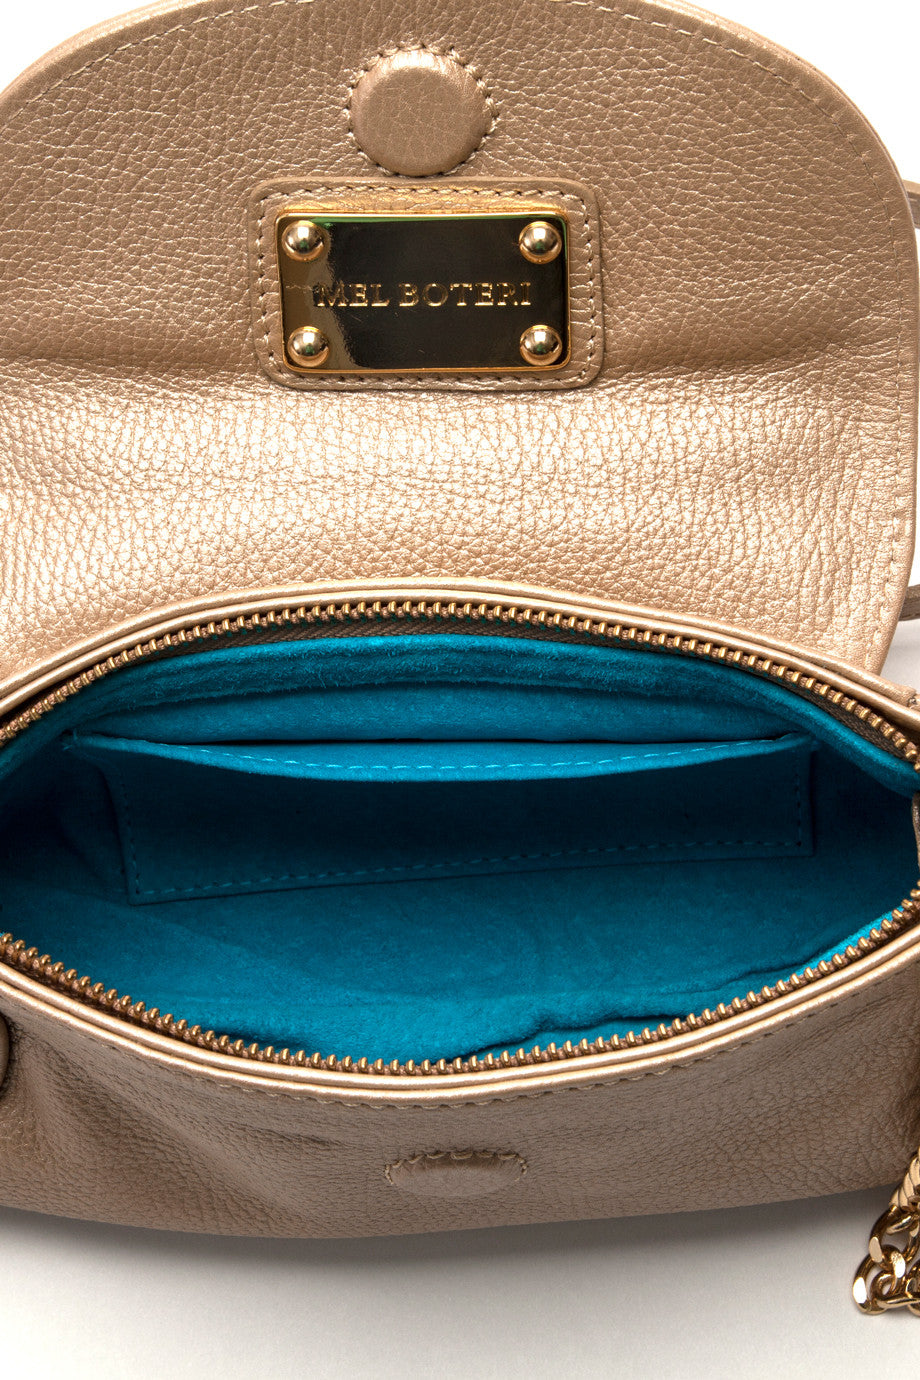 handmade classic leather handbag with turquoise suede lining